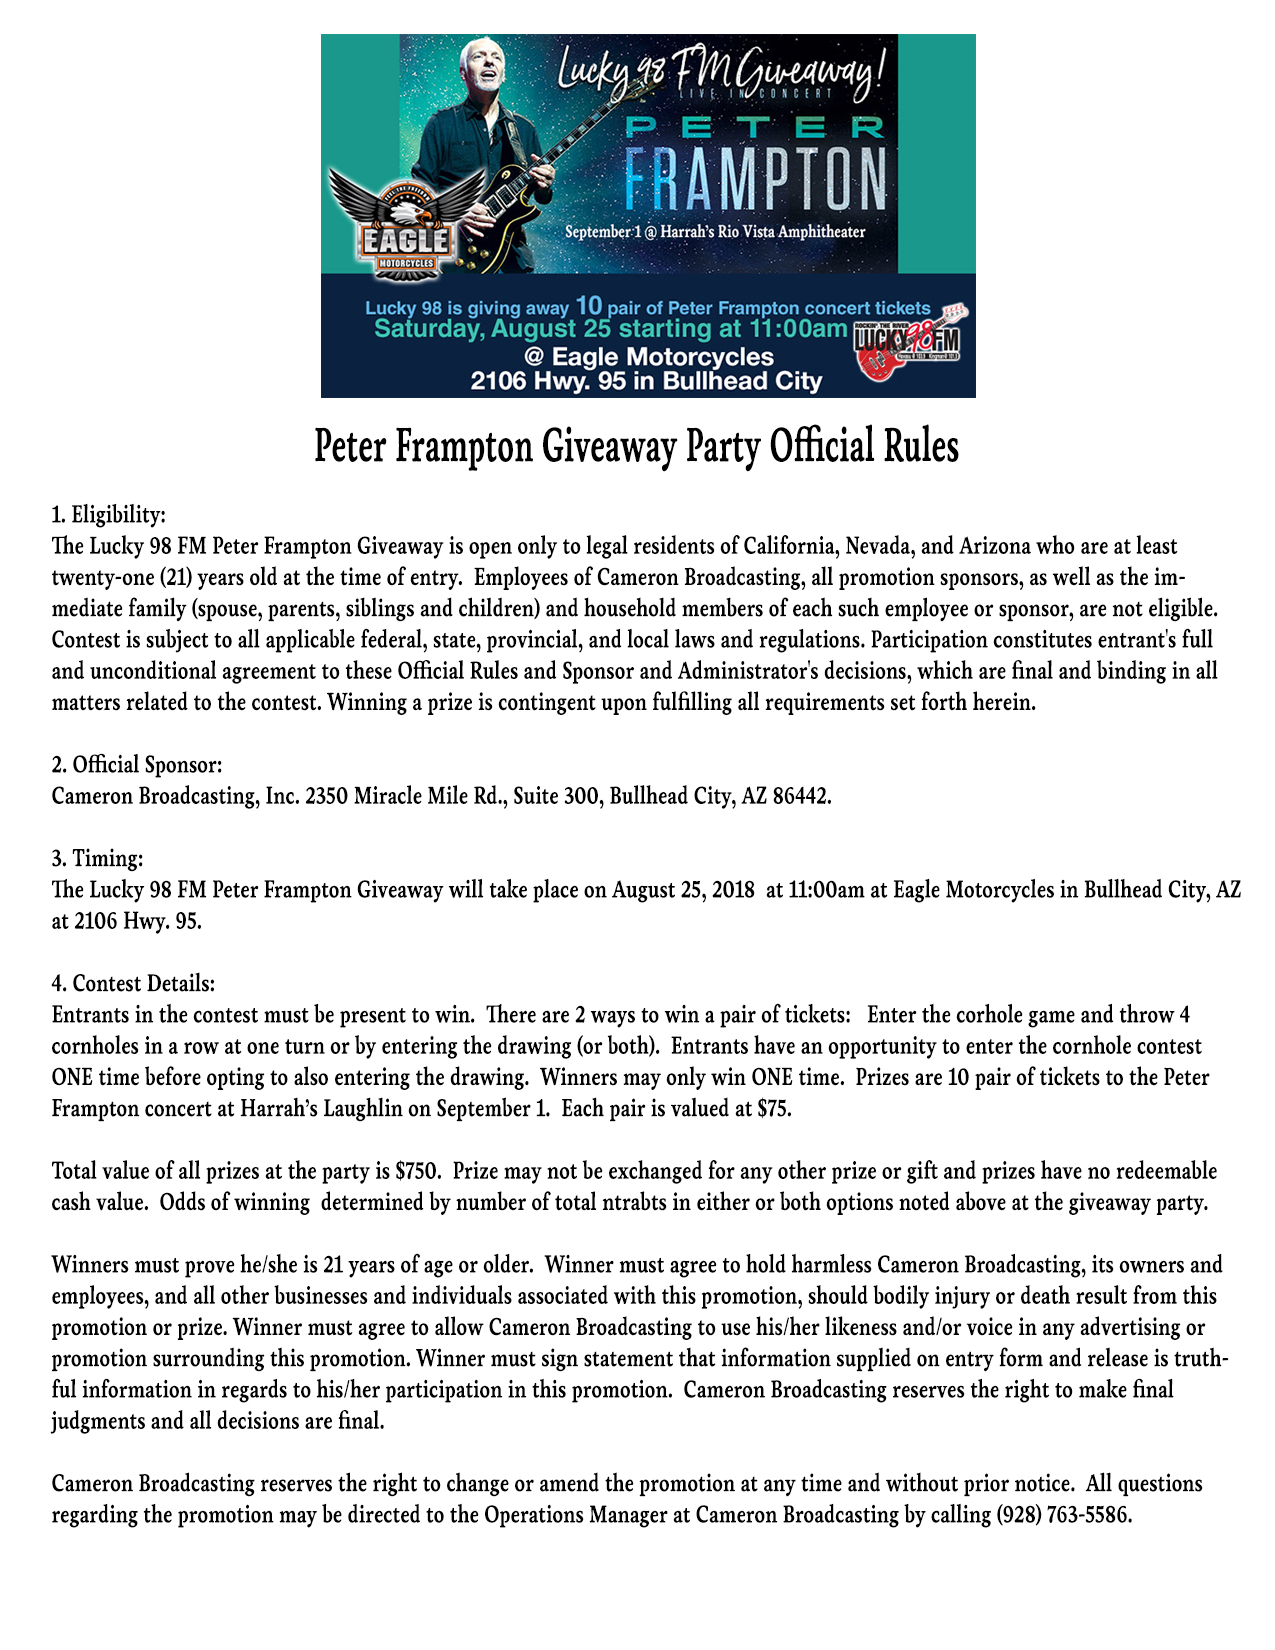 Peter Frampton Giveaway Party Official Rules